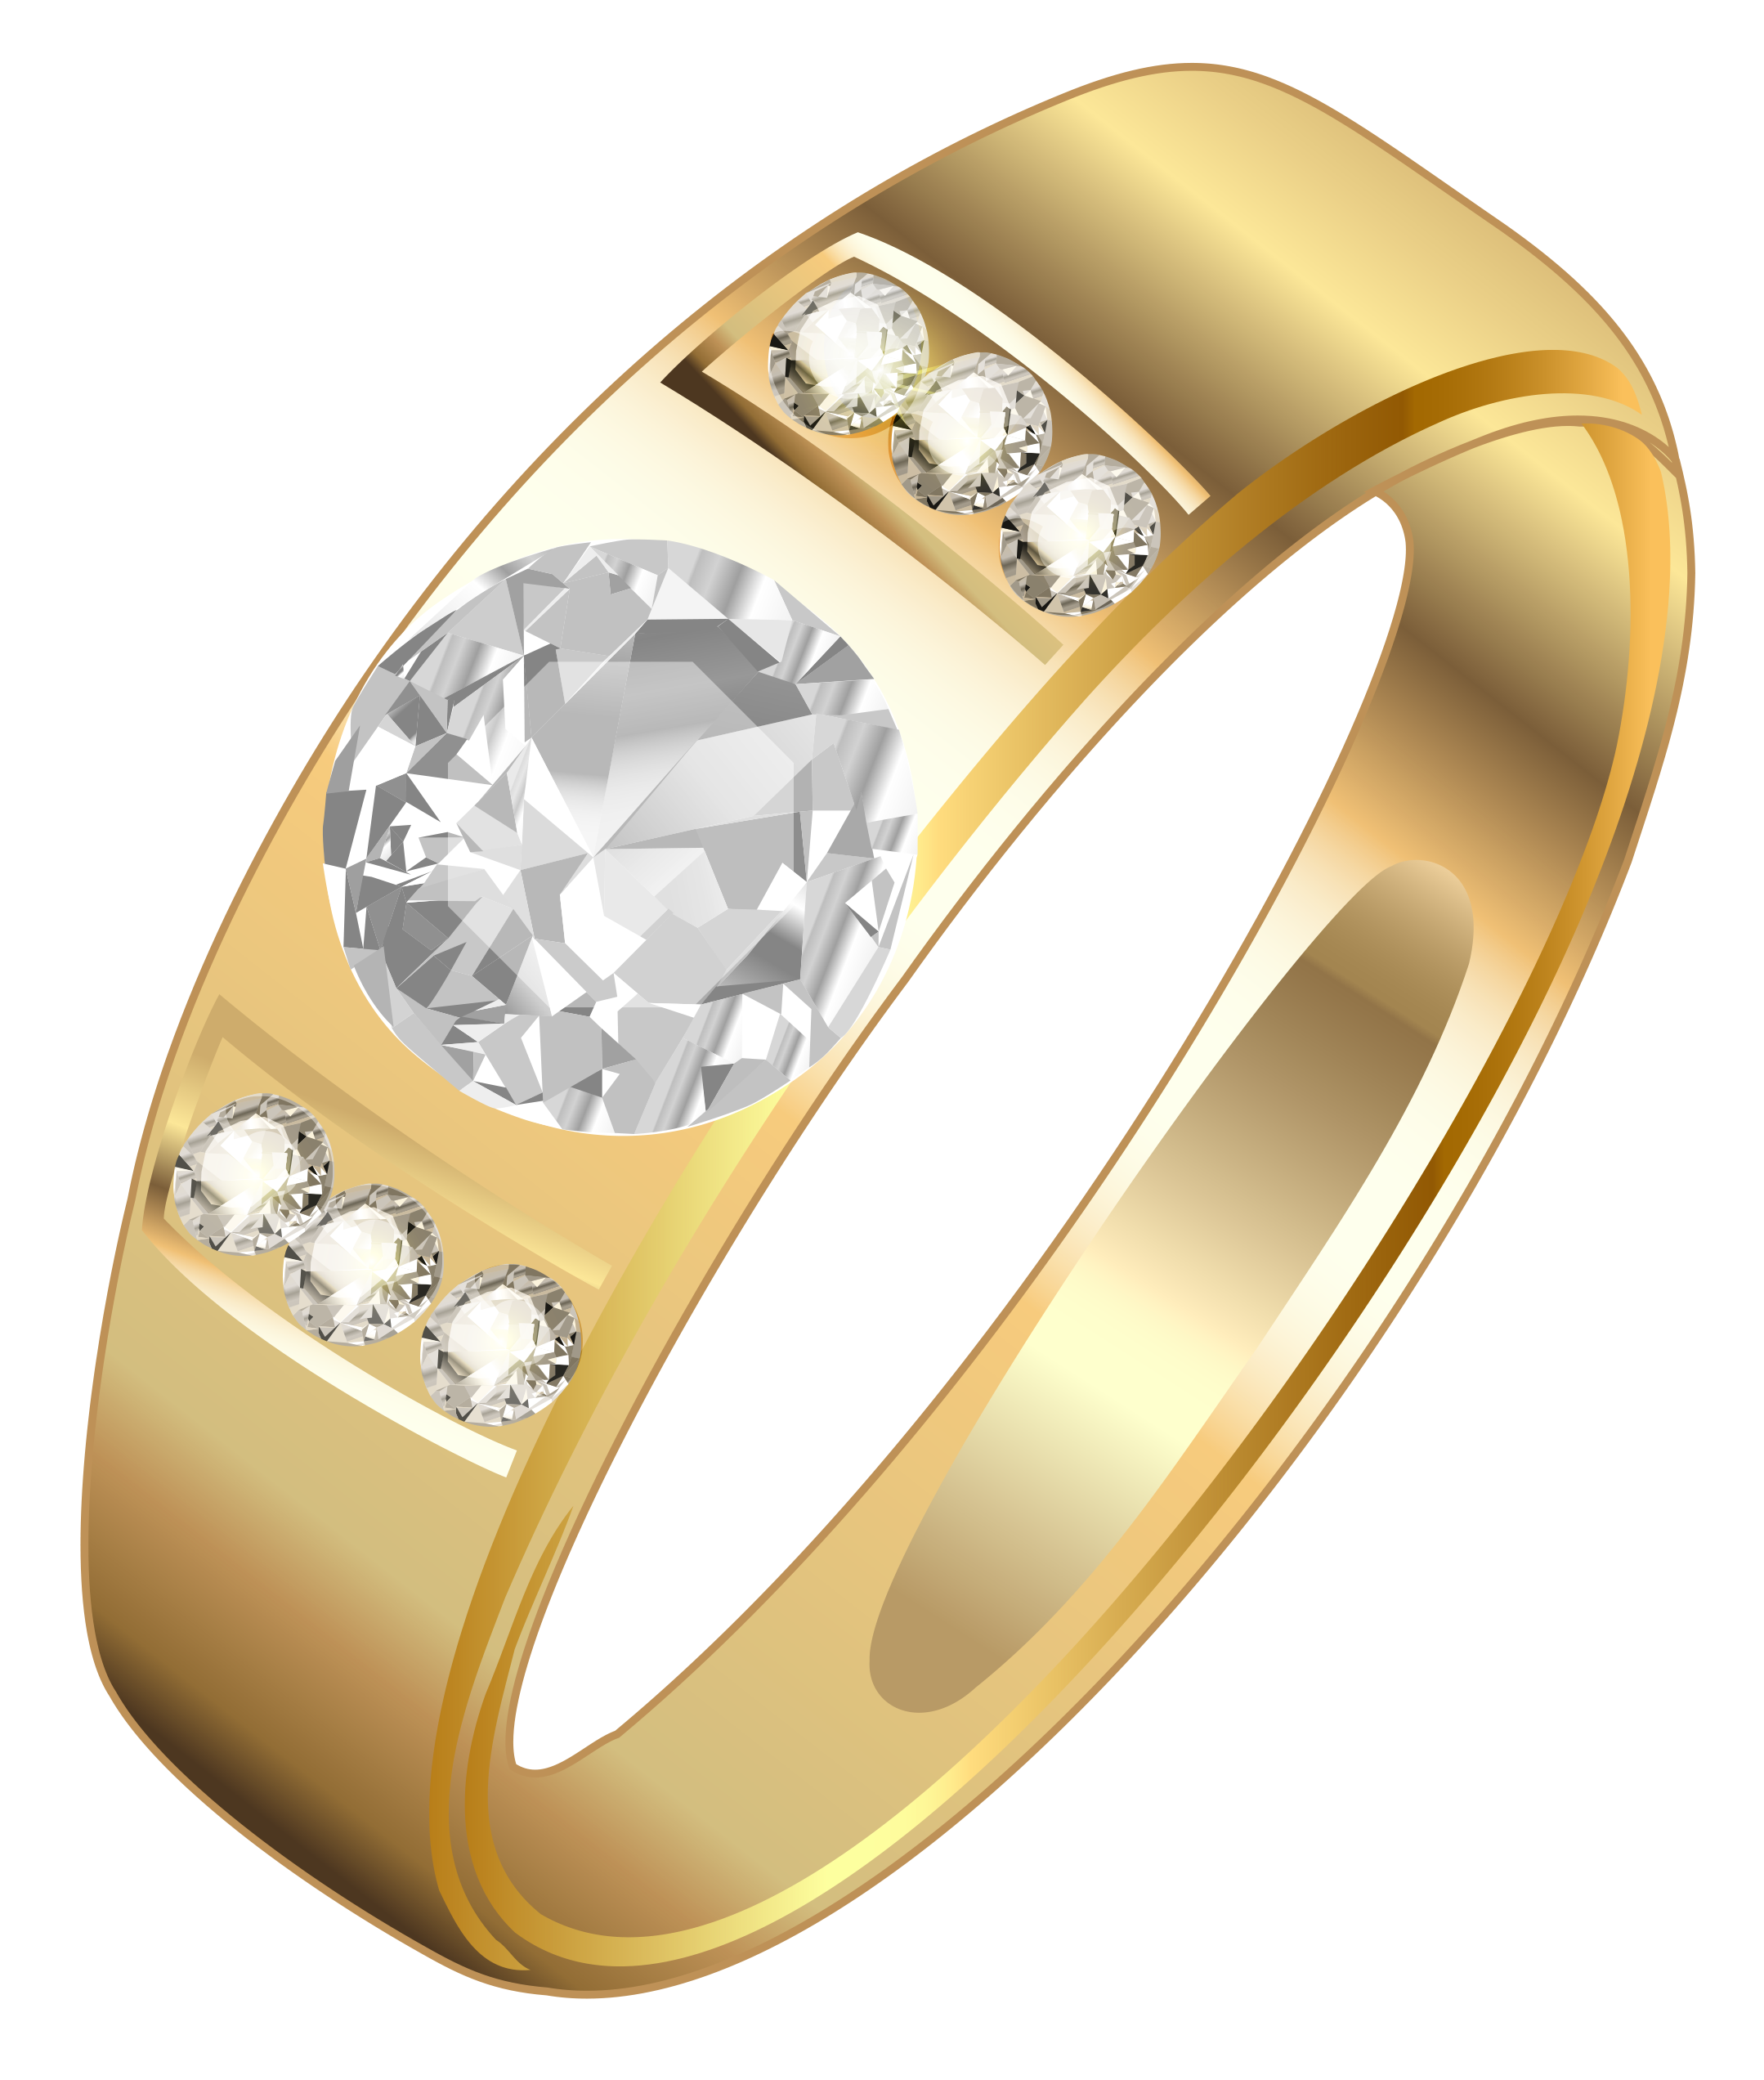 Jewelry images free download. Diamond ring png svg library stock